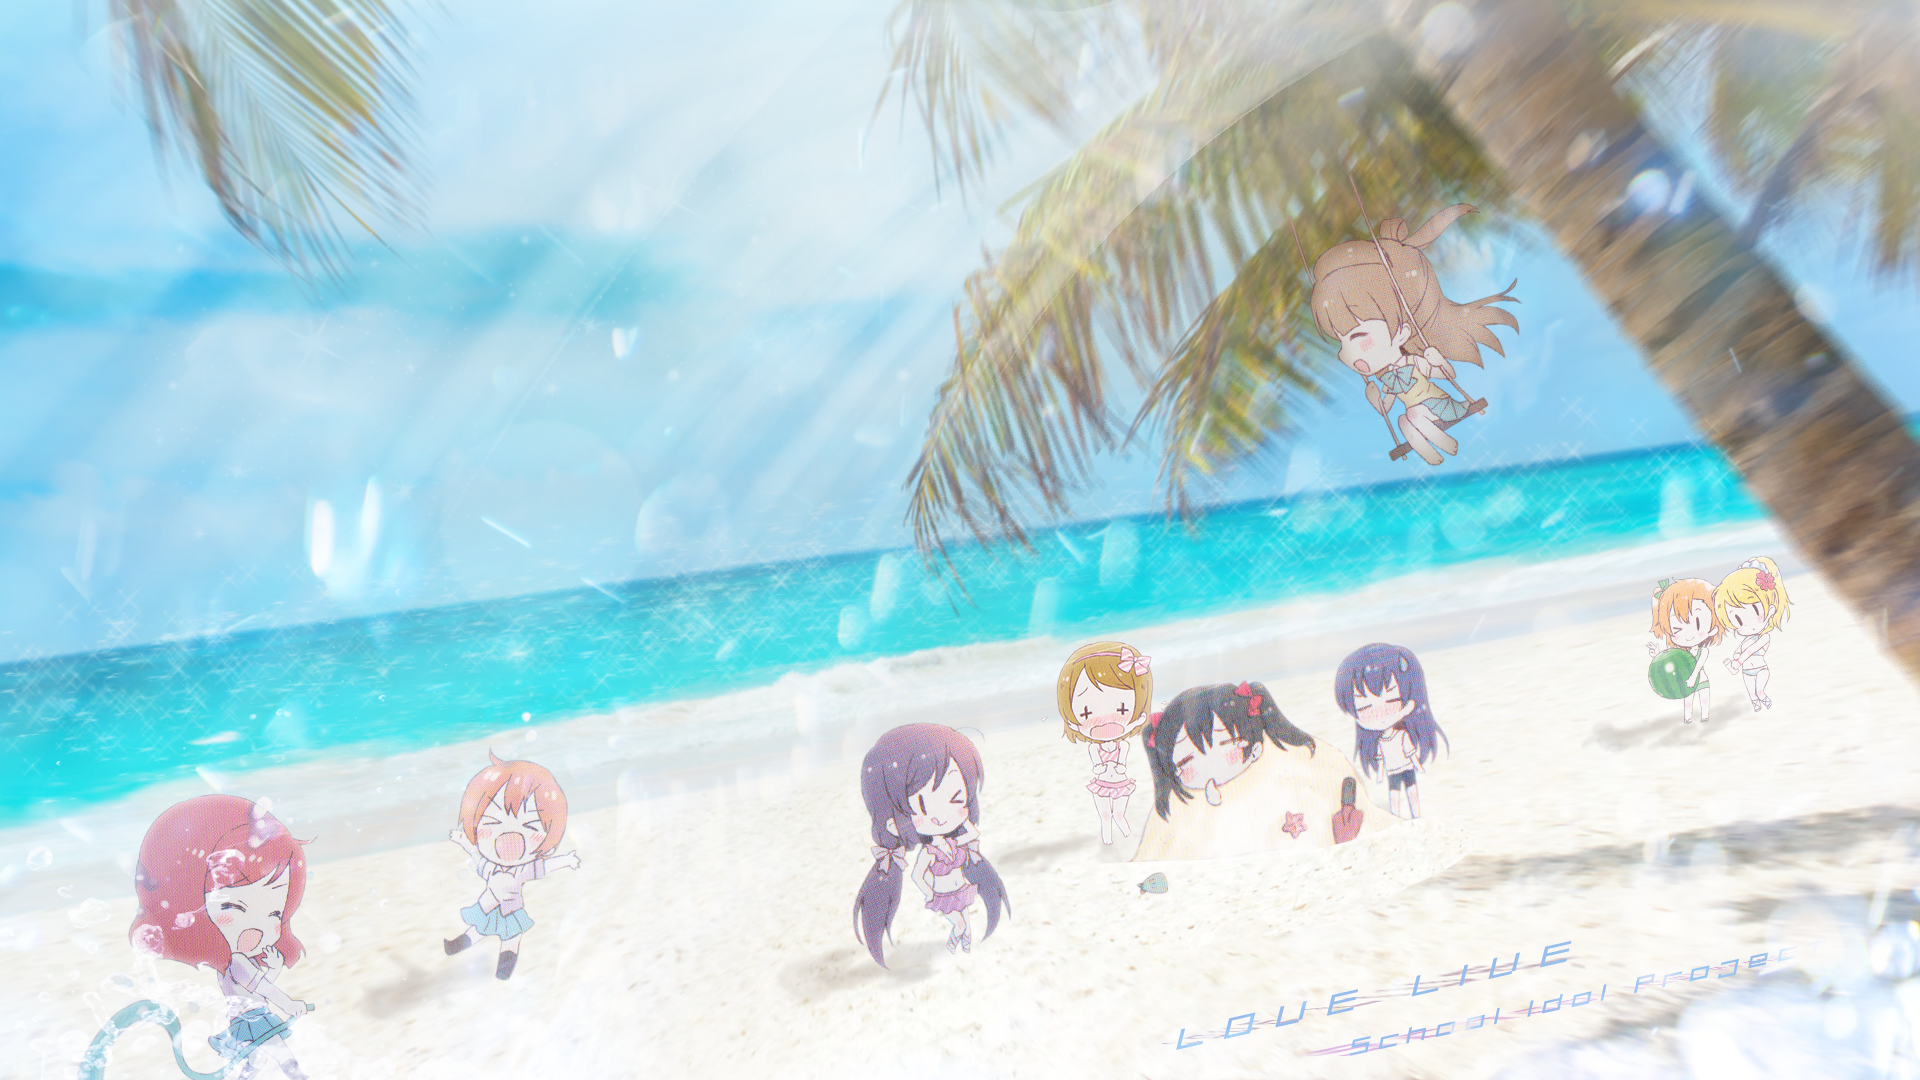 Love Live Hd Wallpaper Background Image 19x1080 Id Wallpaper Abyss